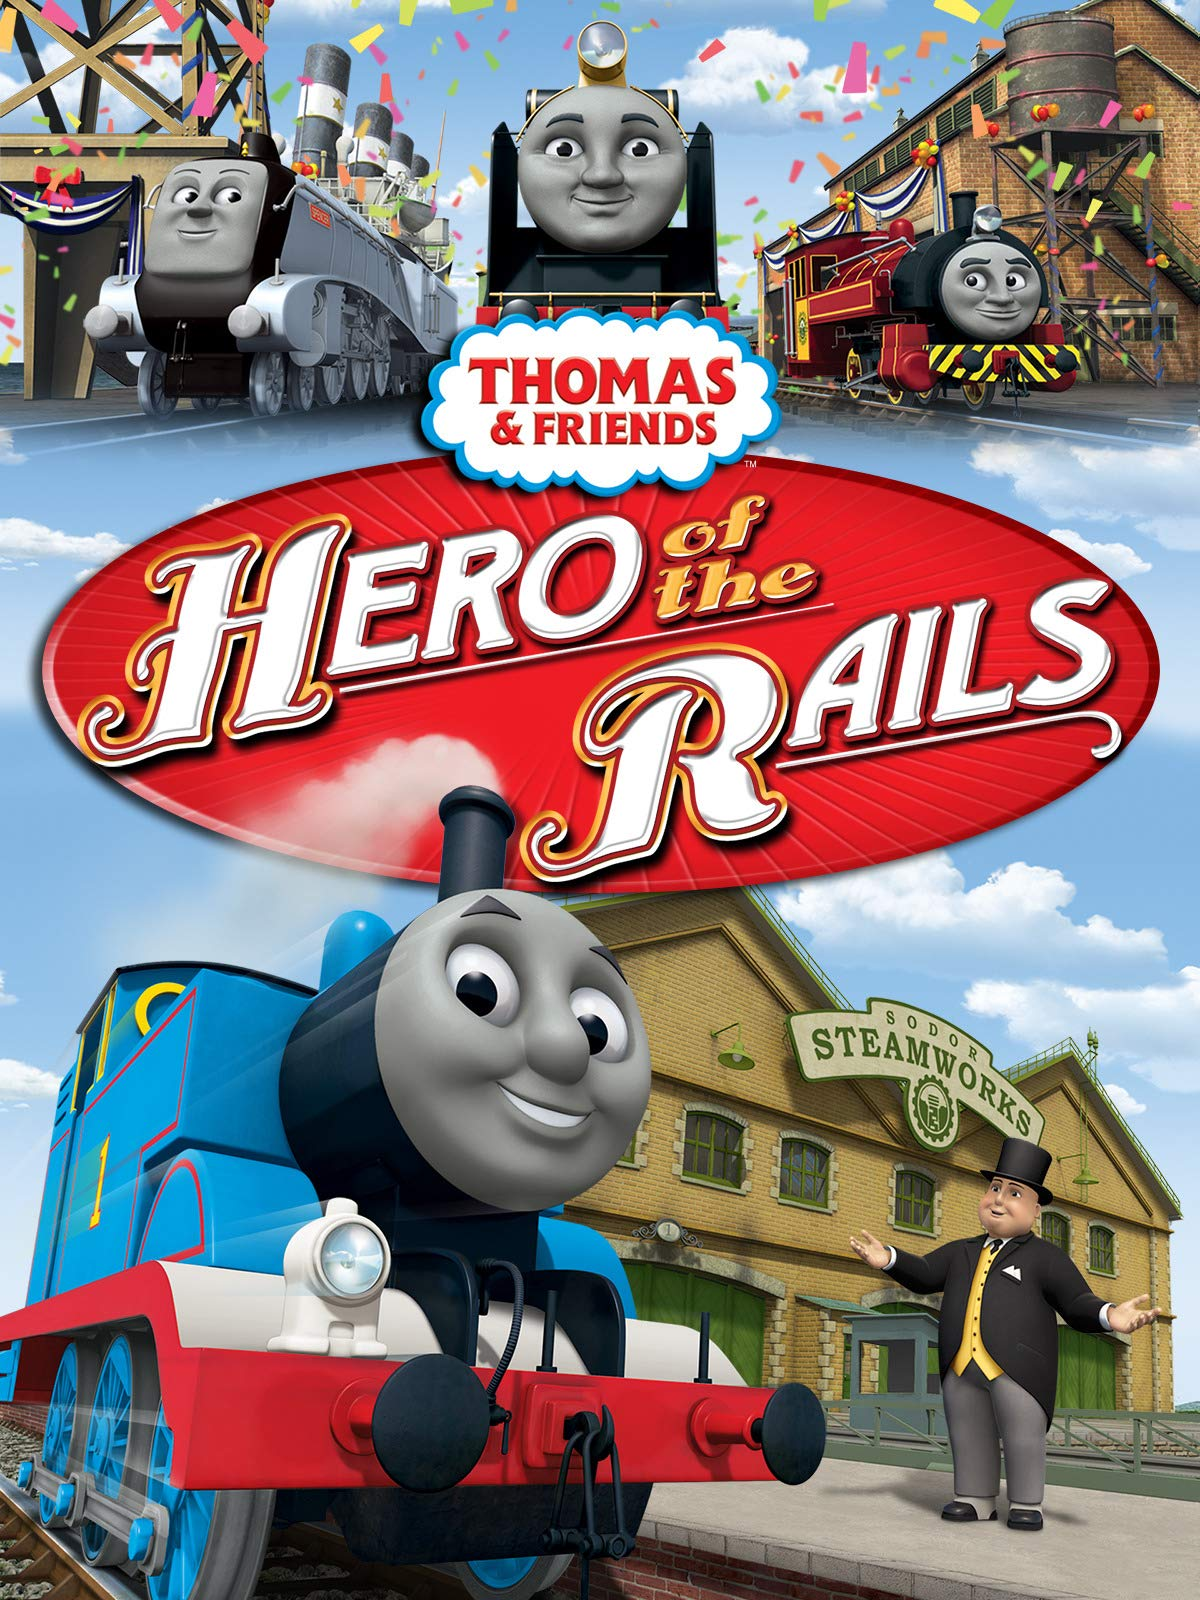 Thomas & Friends: Hero of the Rails (UK) on Amazon Prime Instant Video UK